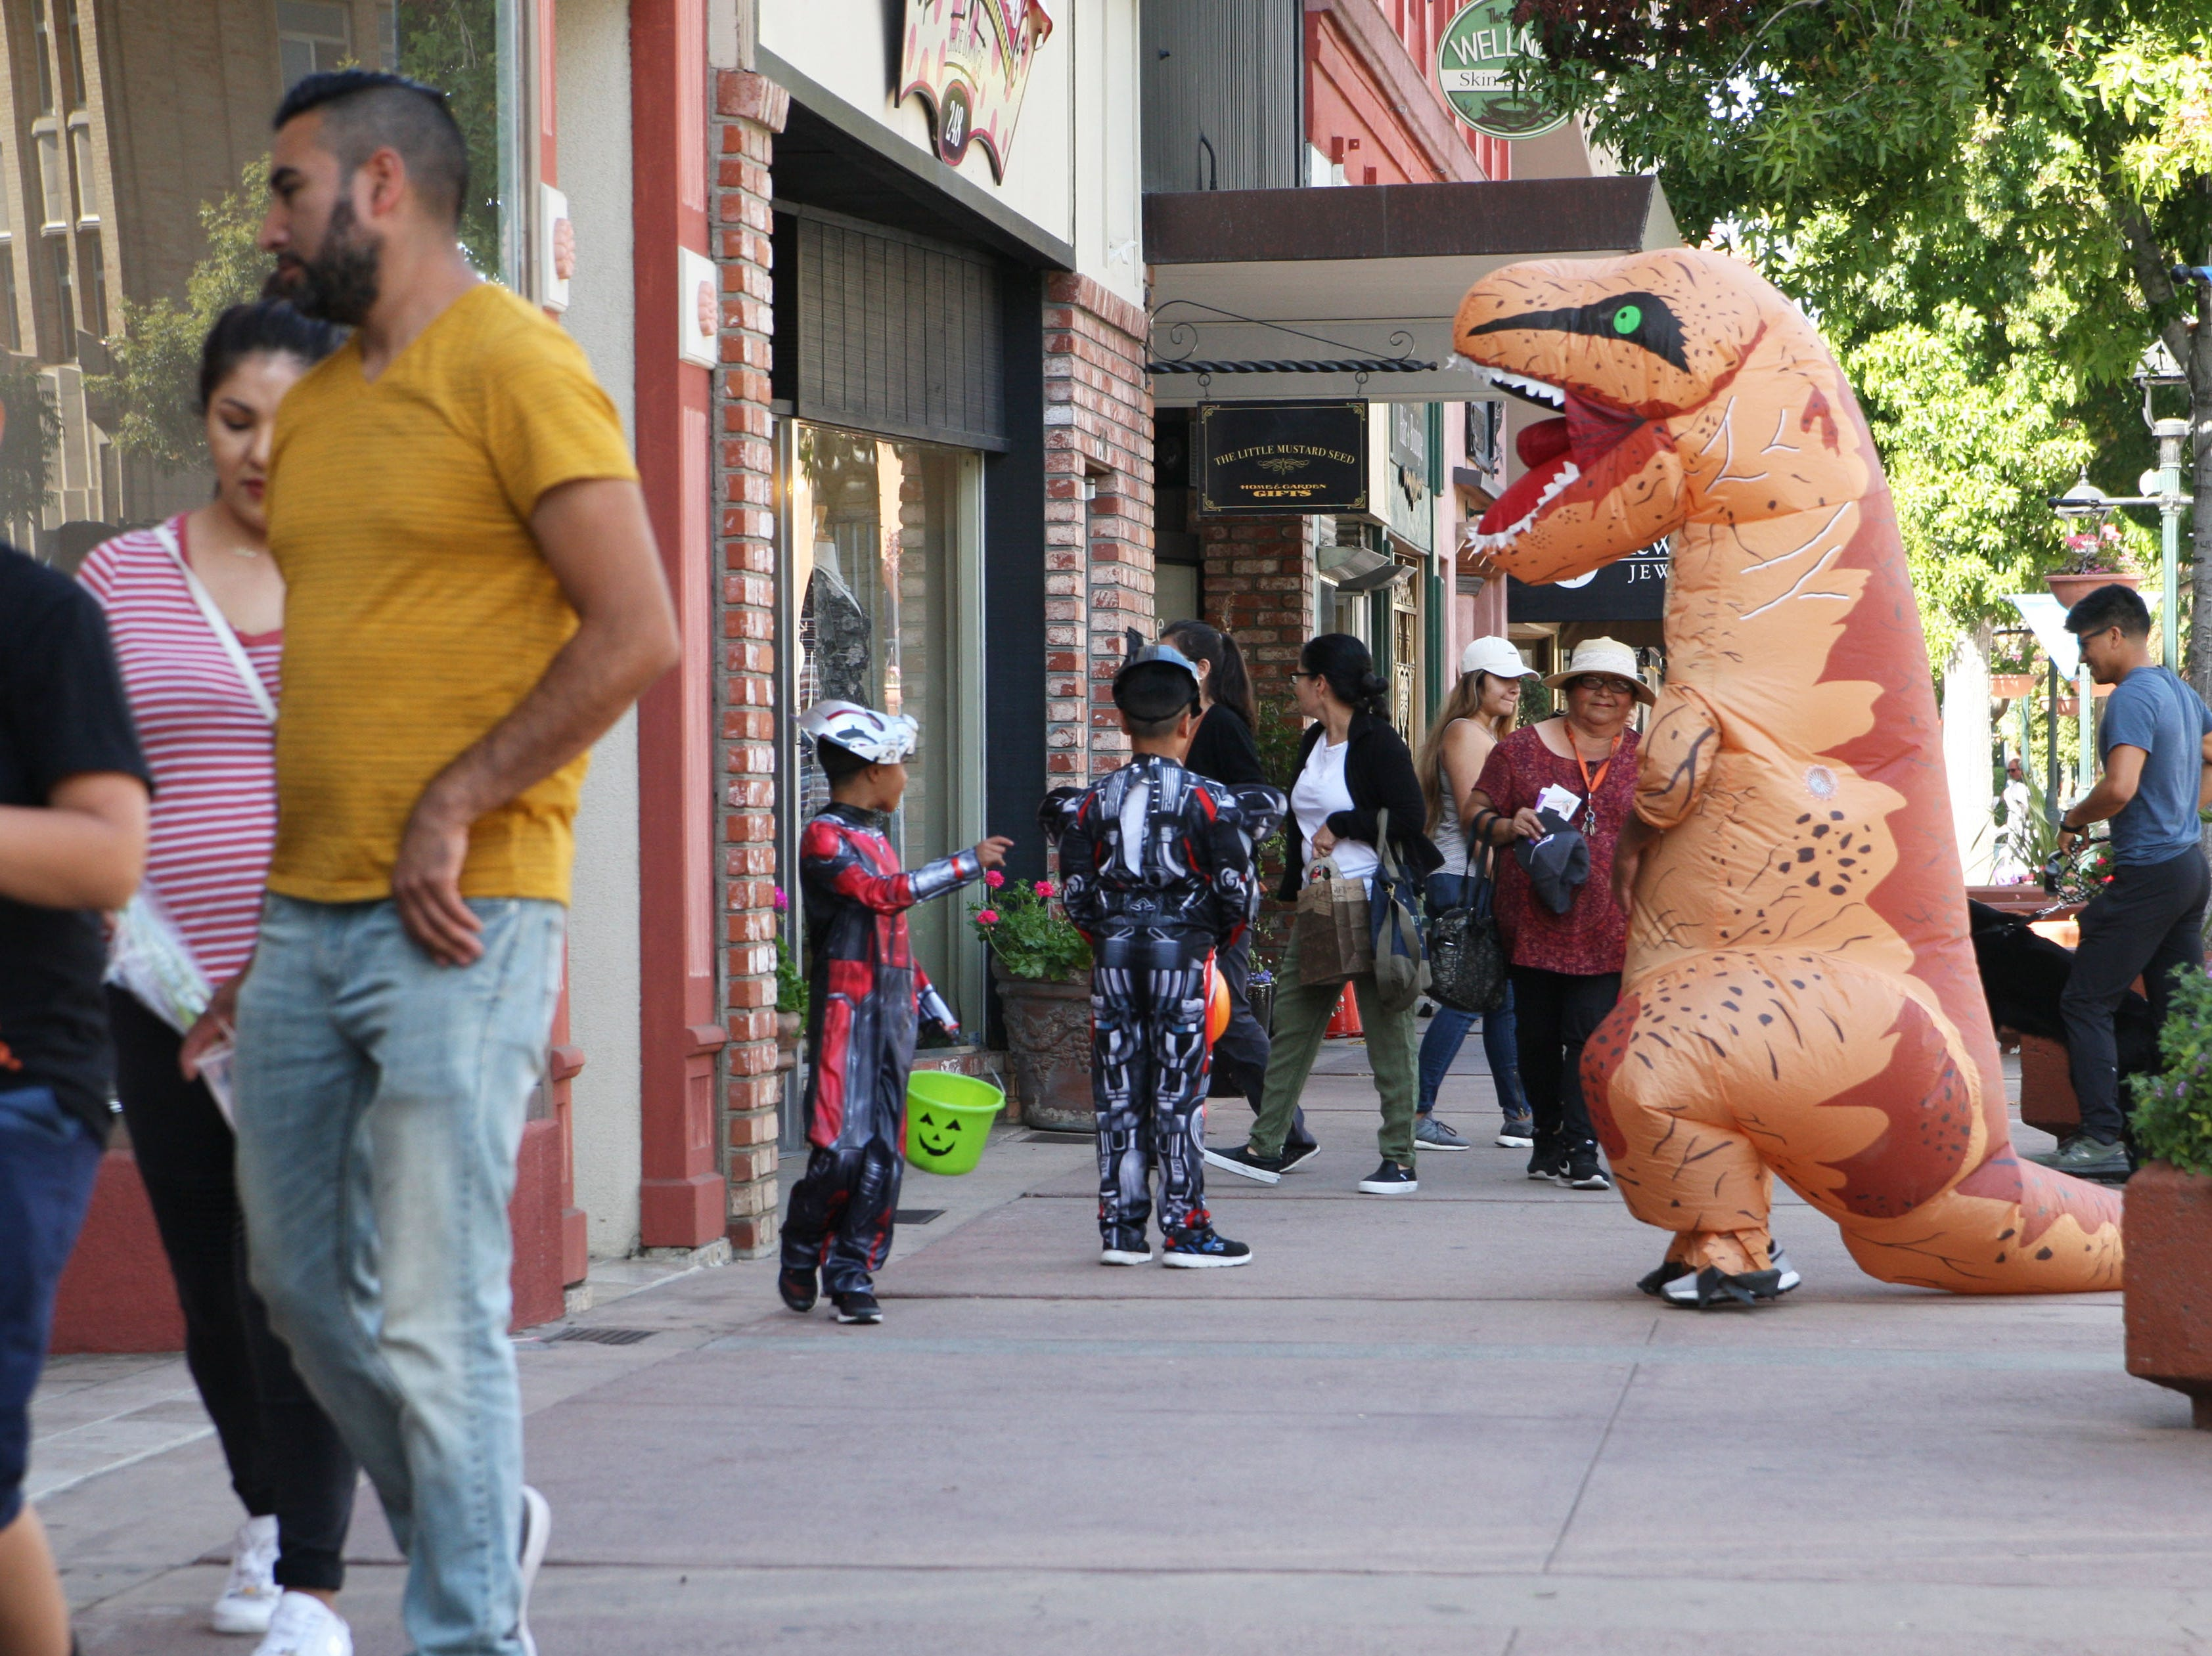 A Tyrannosaurus Rex menaces the Leon family in Oldtown during trick-or-treating.